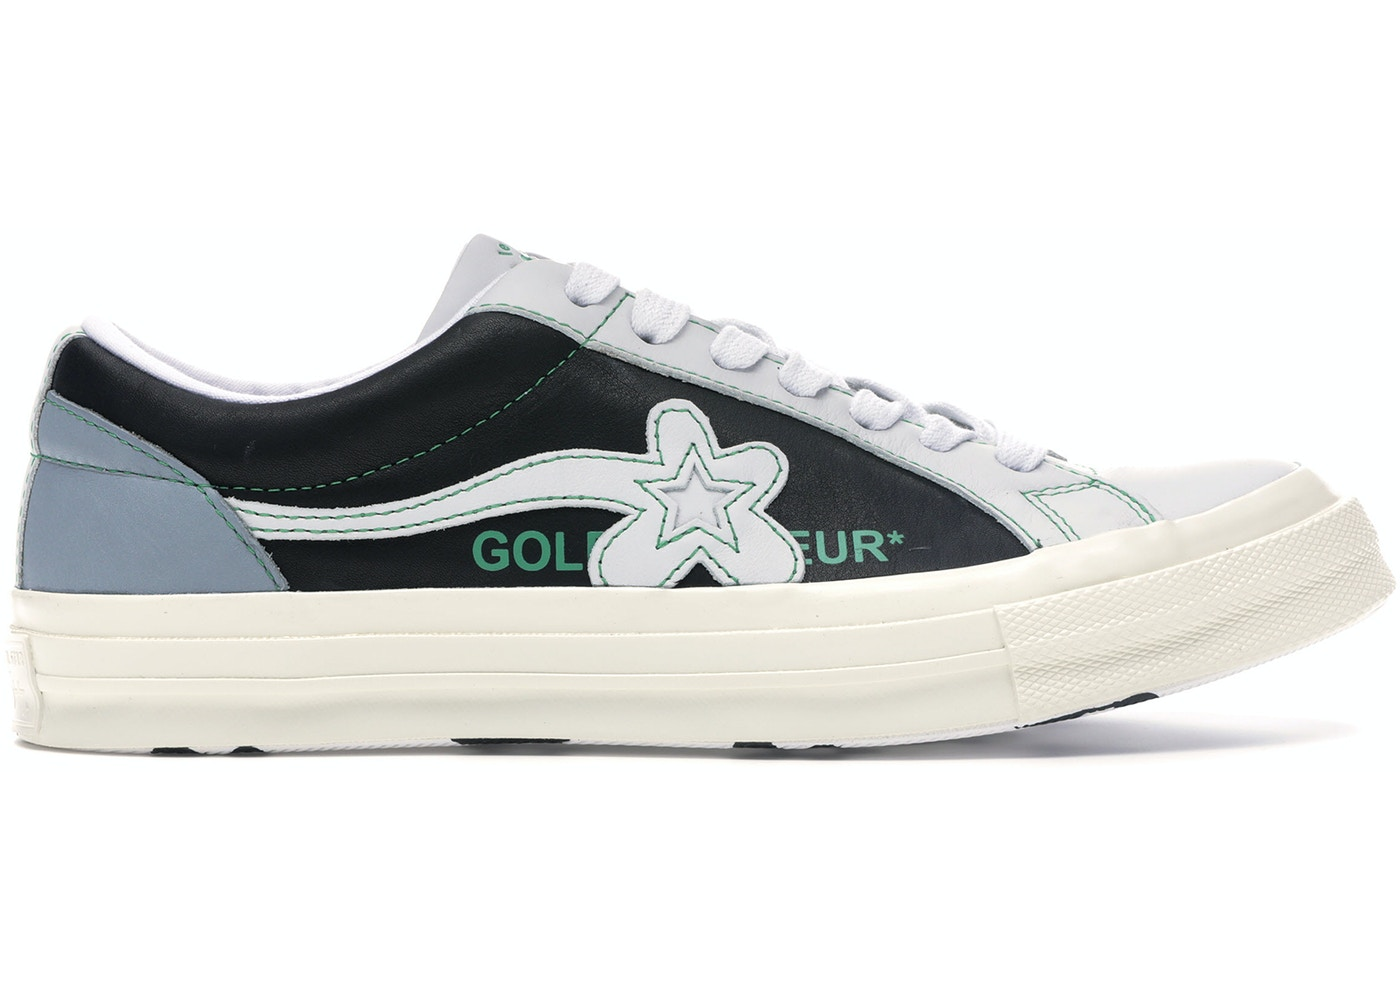 eaa2b007f8 Sell. or Ask. Size: 7.5. View All Bids. Converse One Star Ox Golf Le Fleur  Industrial Pack Black